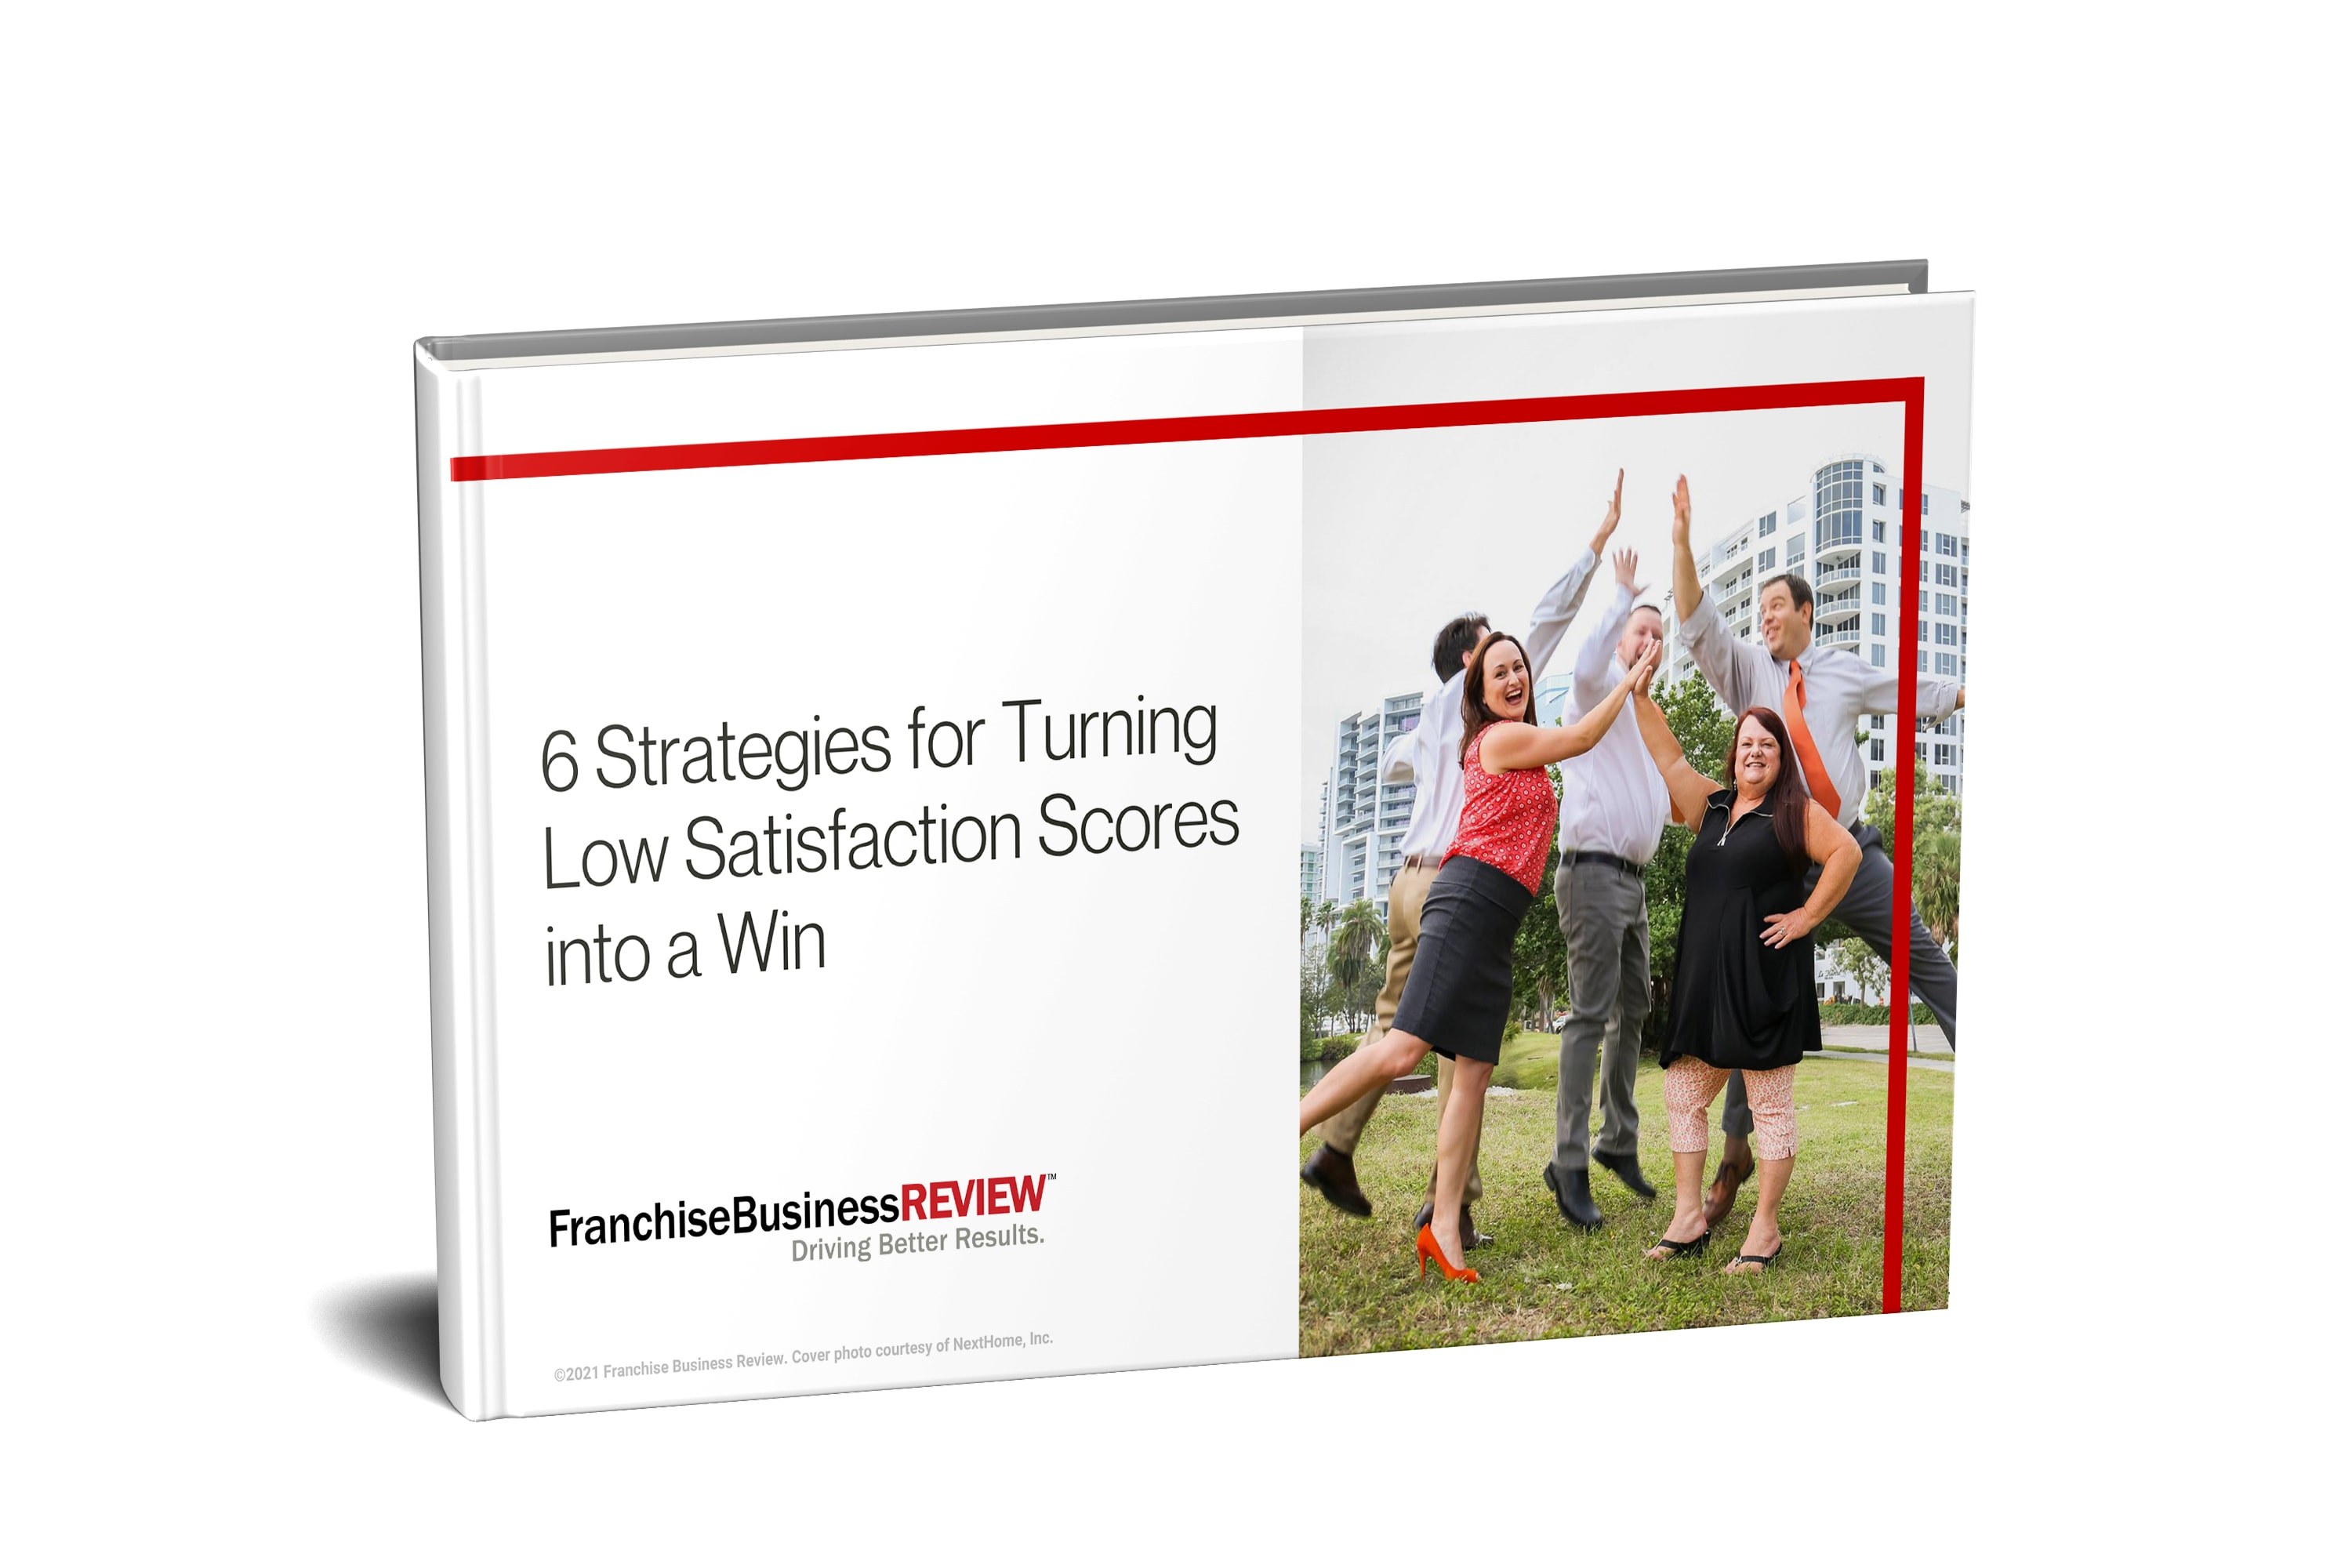 eBook: urning Low Franchisee Satisfaction Scores into a Win